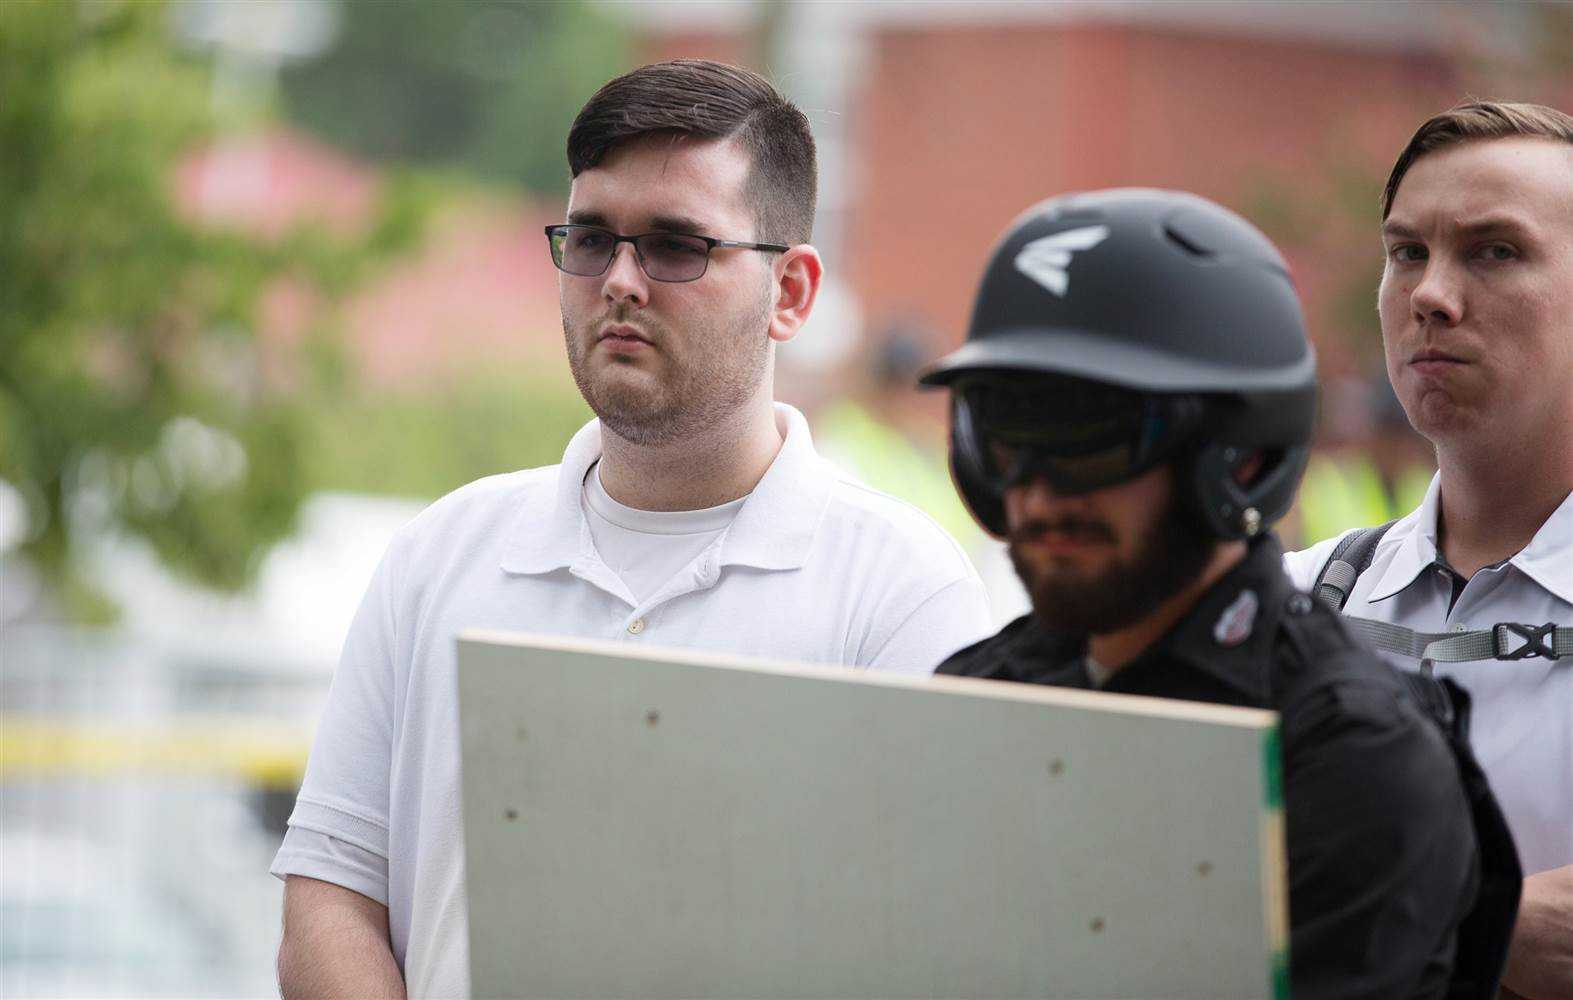 Ohio Man Arrested In Charlottesville Rally Tragedy | charlottesville